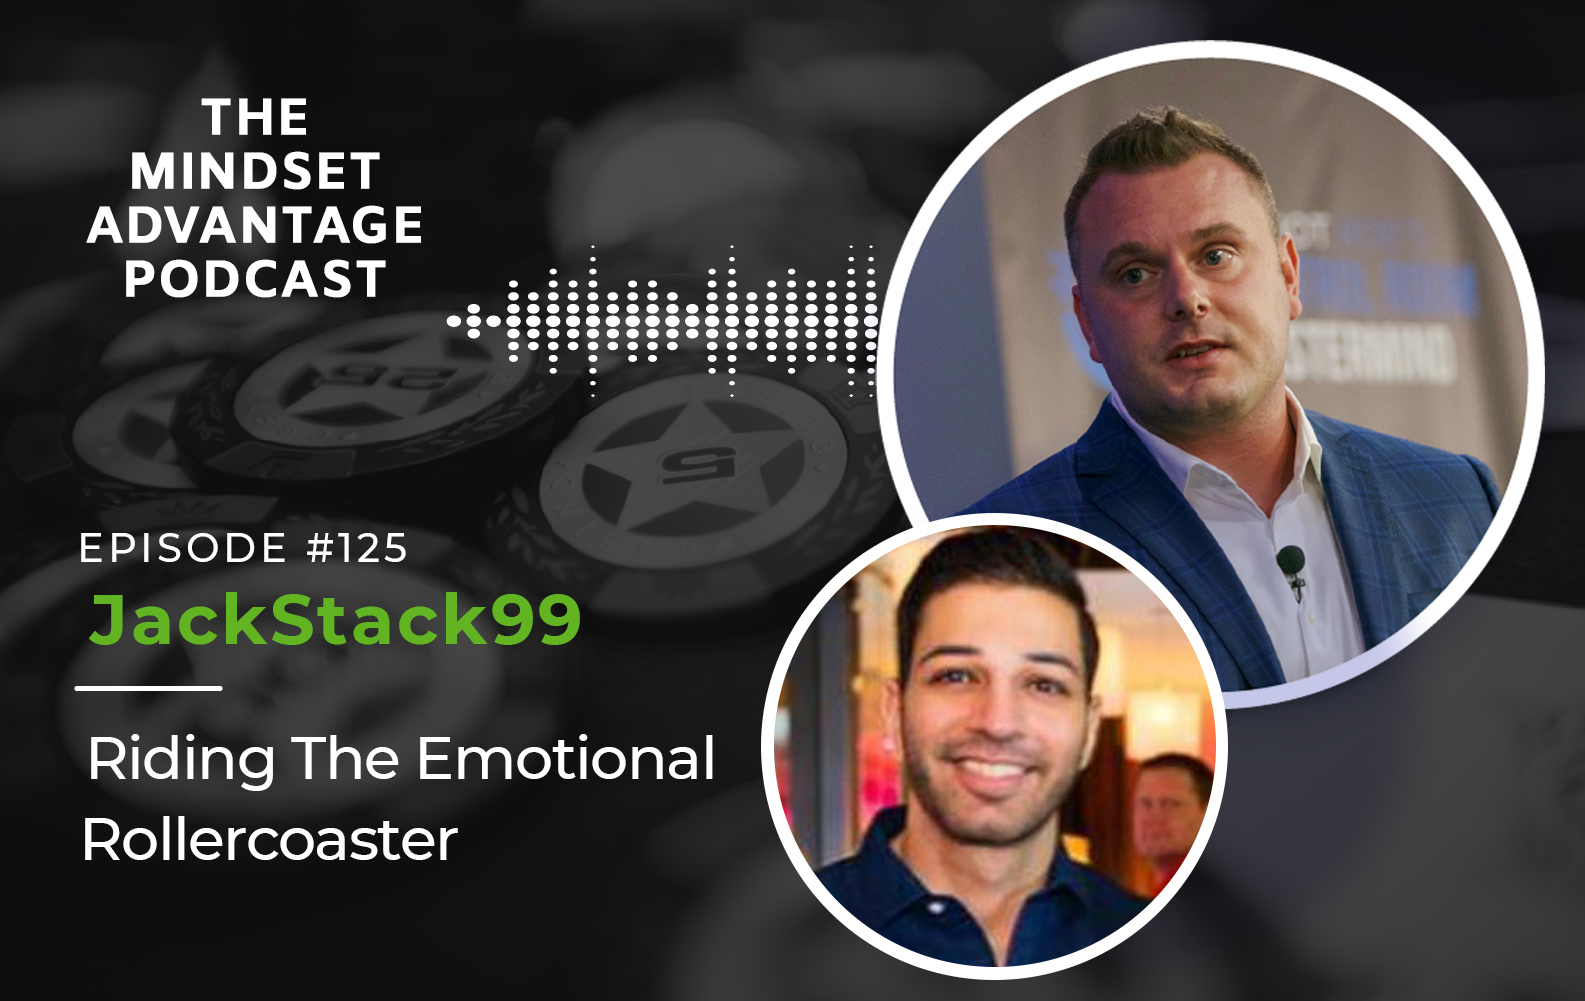 Episode 125 - JackStack99 - Riding the Emotional Rollercoaster